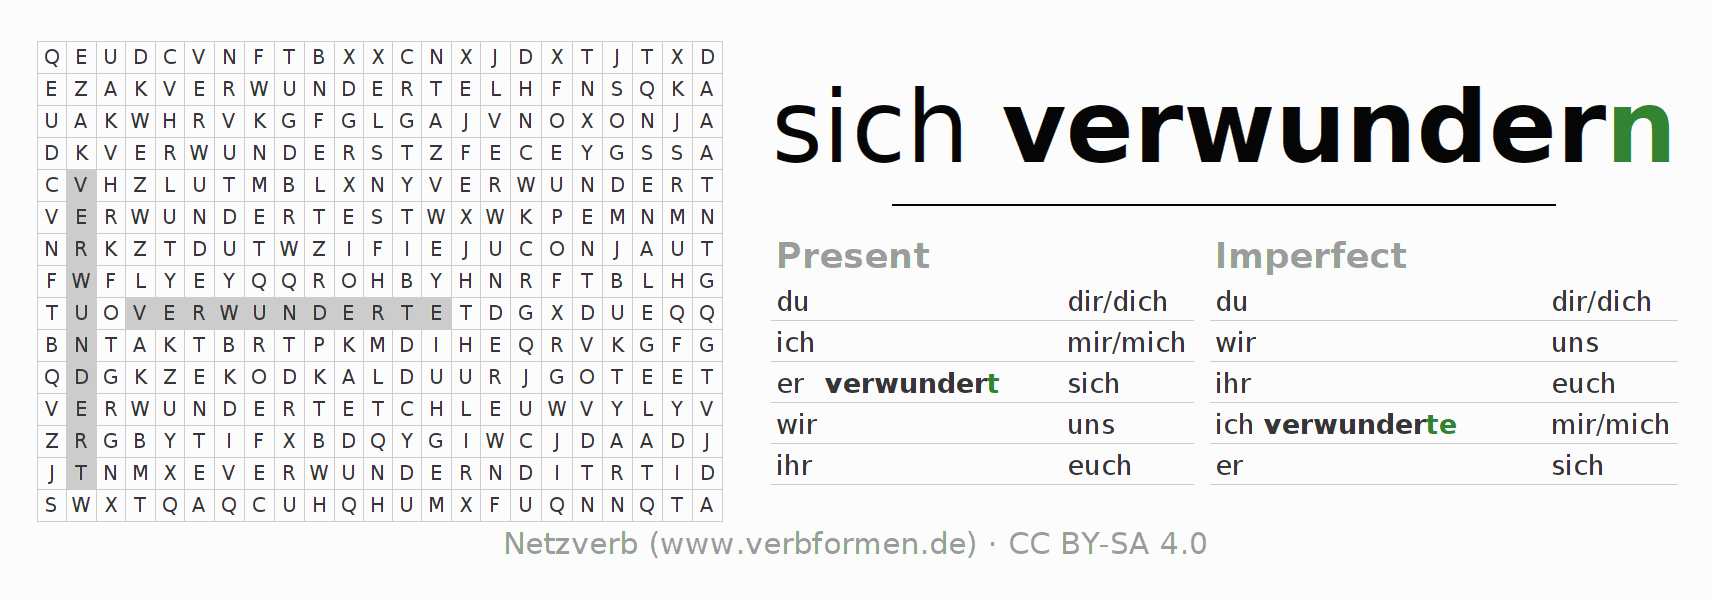 Word search puzzle for the conjugation of the verb sich verwundern